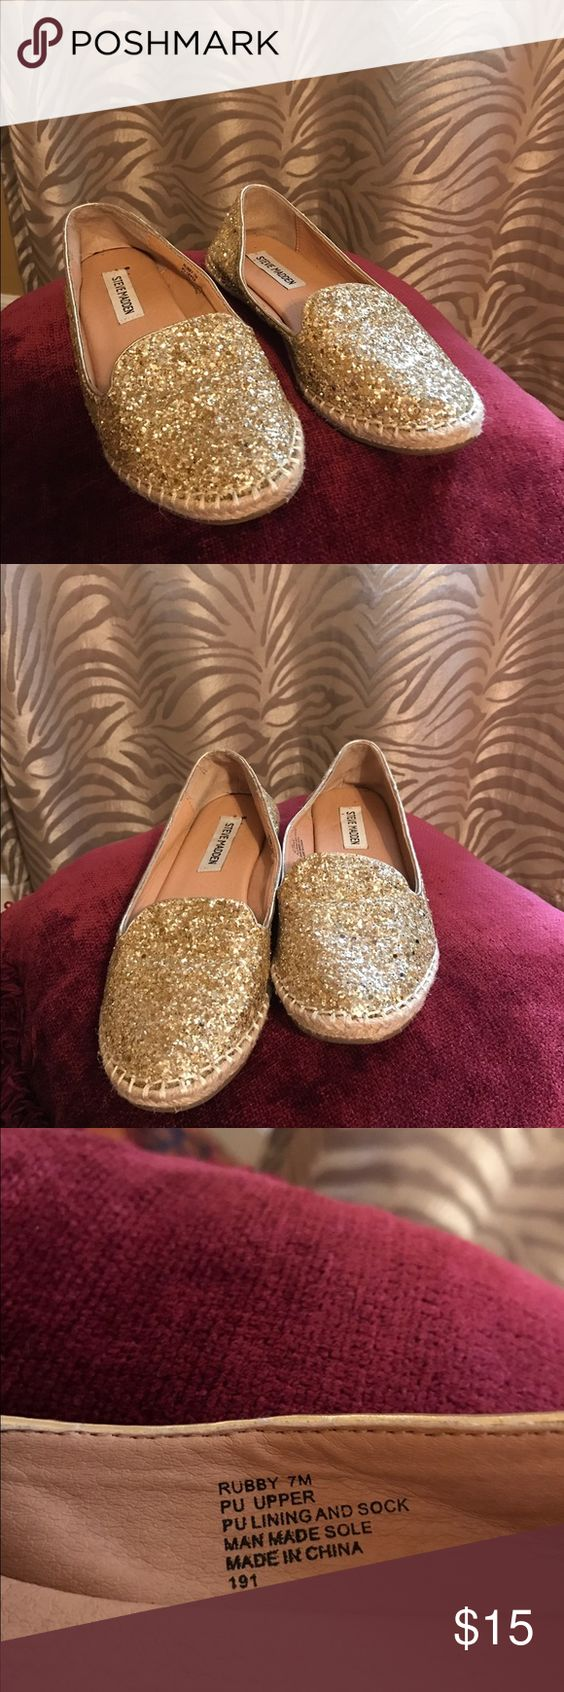 Steve Madden Shoes Steve Madden 'Rubby' Glitter Slip-On Size 7 Steve Madden Shoes Flats & Loafers